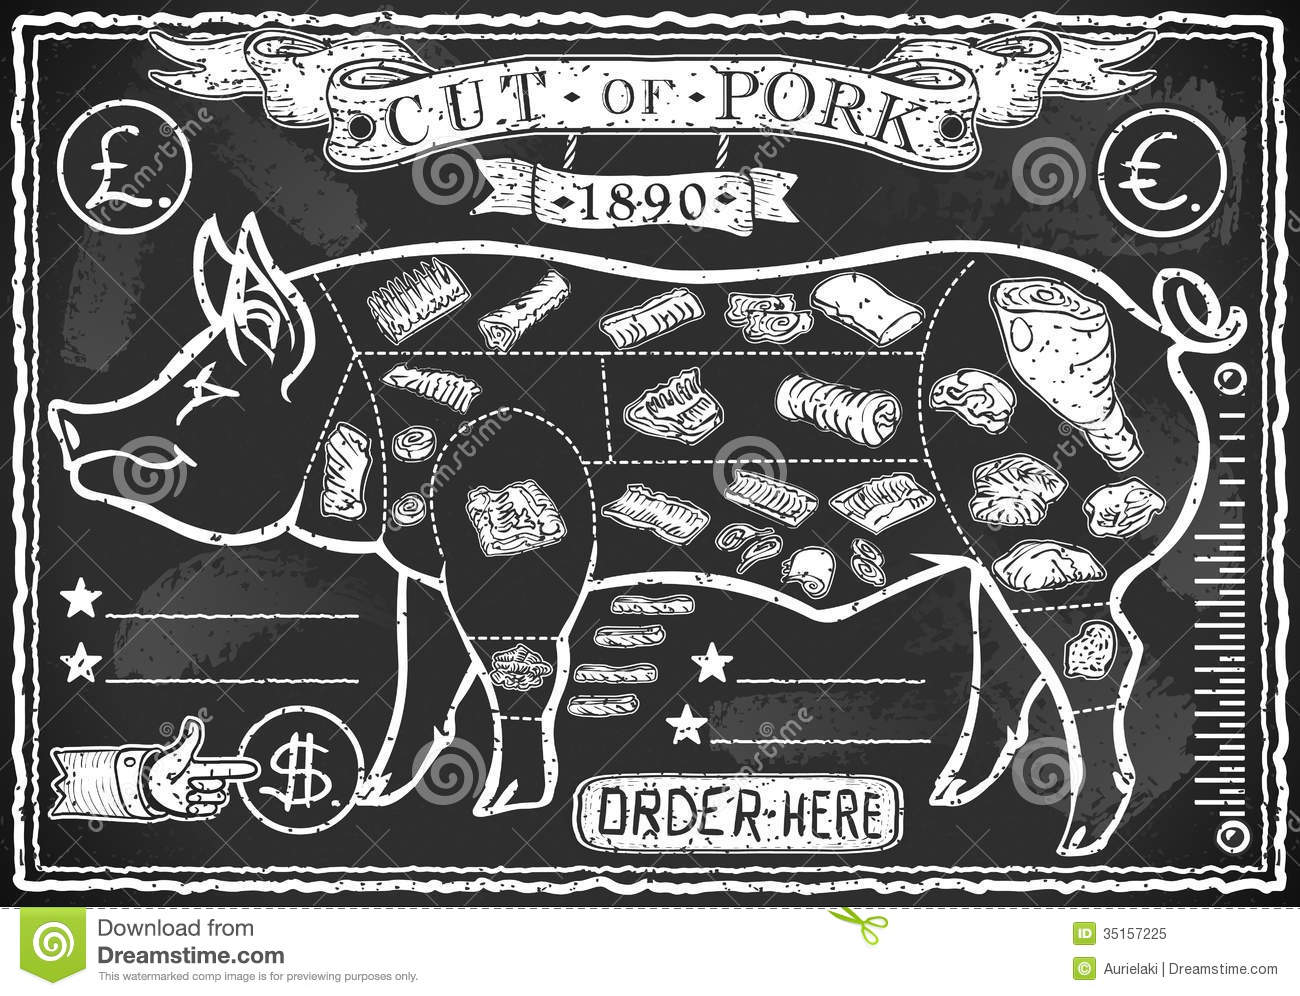 Viewtopic together with Offals Giblets together with 131347089499 further 9D88EC1E F68A 11DA AA4B 000A95D14B6E together with Royalty Free Stock Photo Vintage Blackboard Cut Pork Detailed Illustration Illustration Eps Color Space Rgb Image35157225. on beef cuts chart